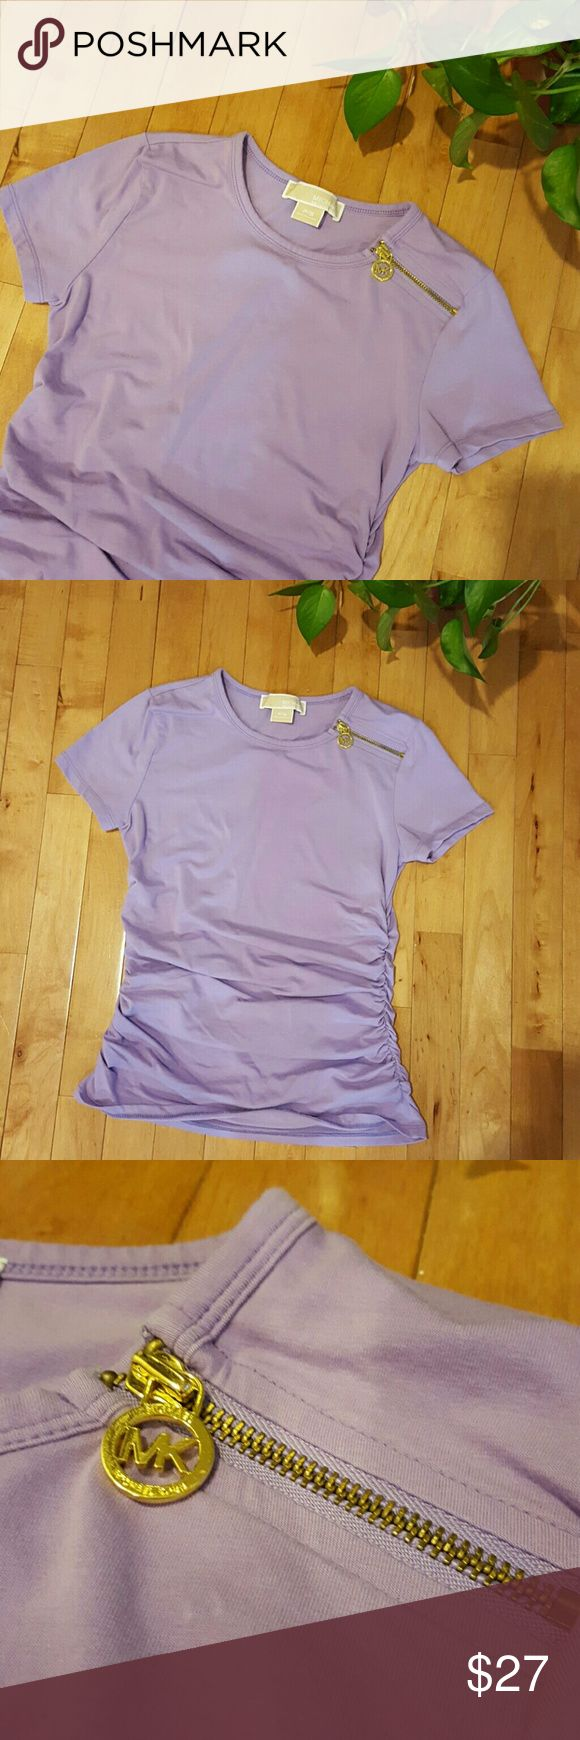 Michael Kors Lavender Shirt NWOT Michael Kors shirt. Got is as a gift but it is too small for me! Brand new never worn condition! Michael Kors Tops